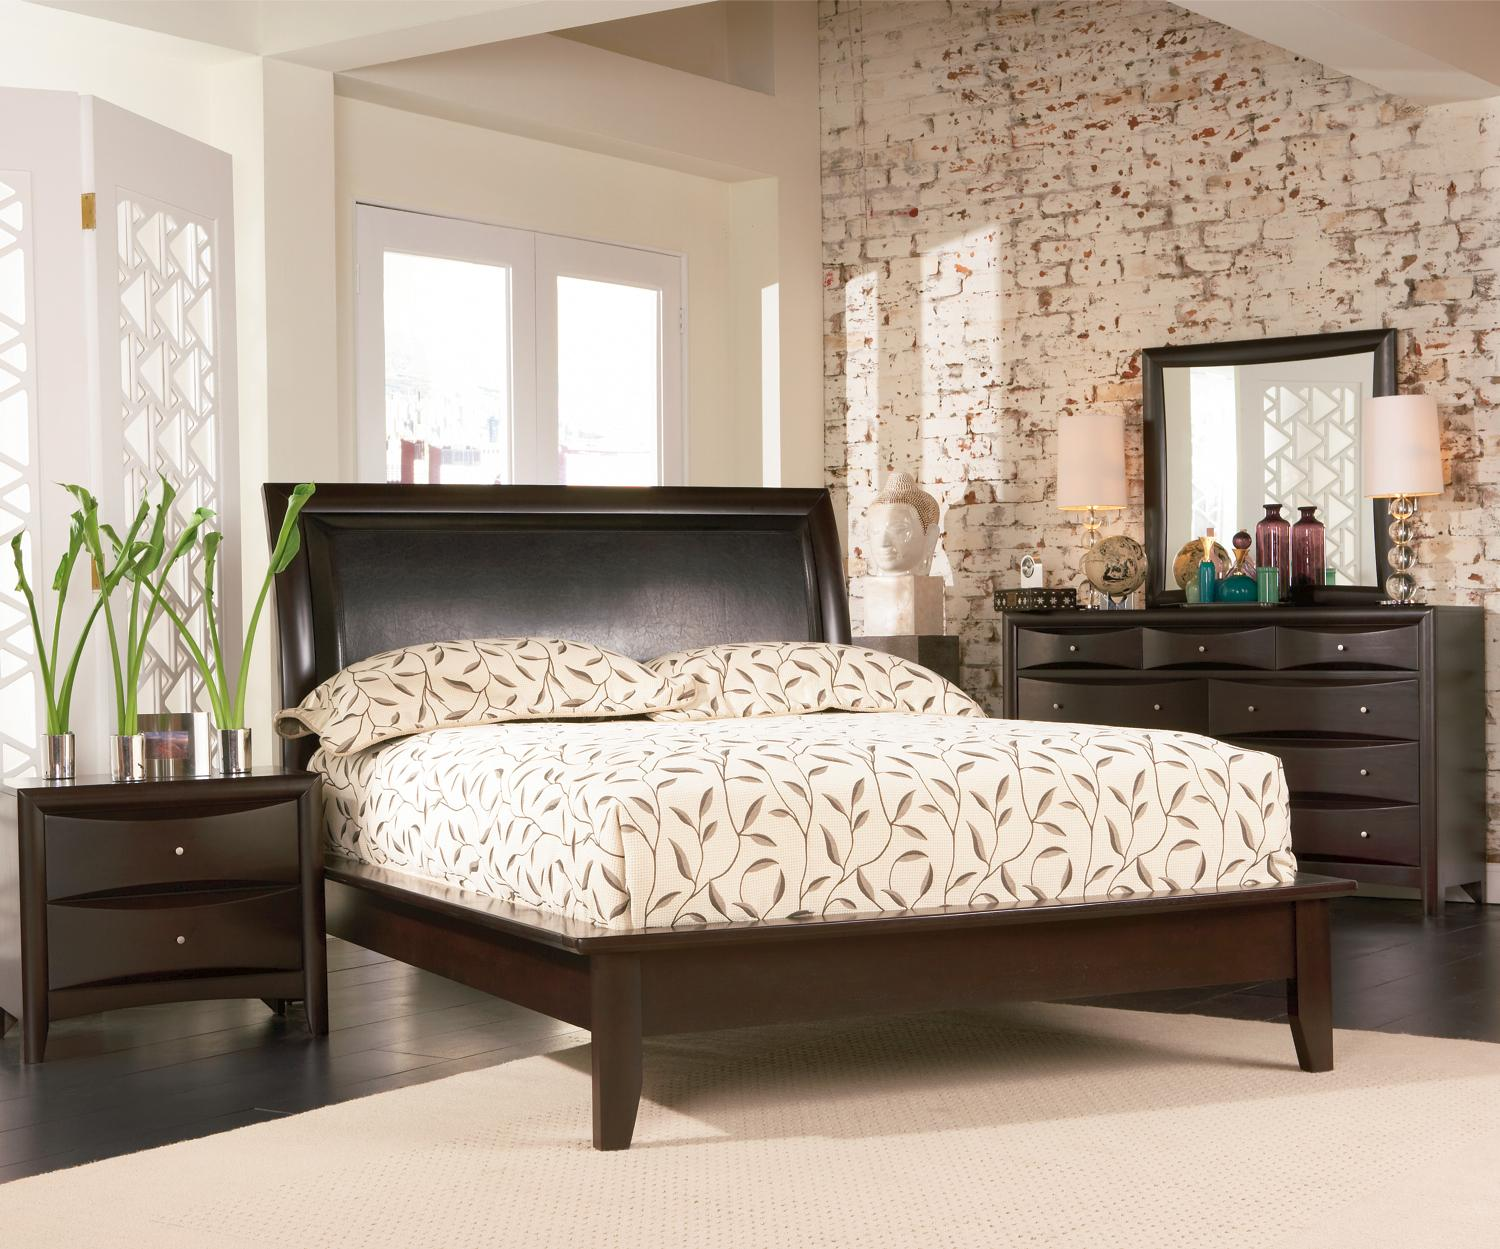 Coaster Phoenix Queen Bedroom Group - Item Number: 300690 Q Bedroom Group 4